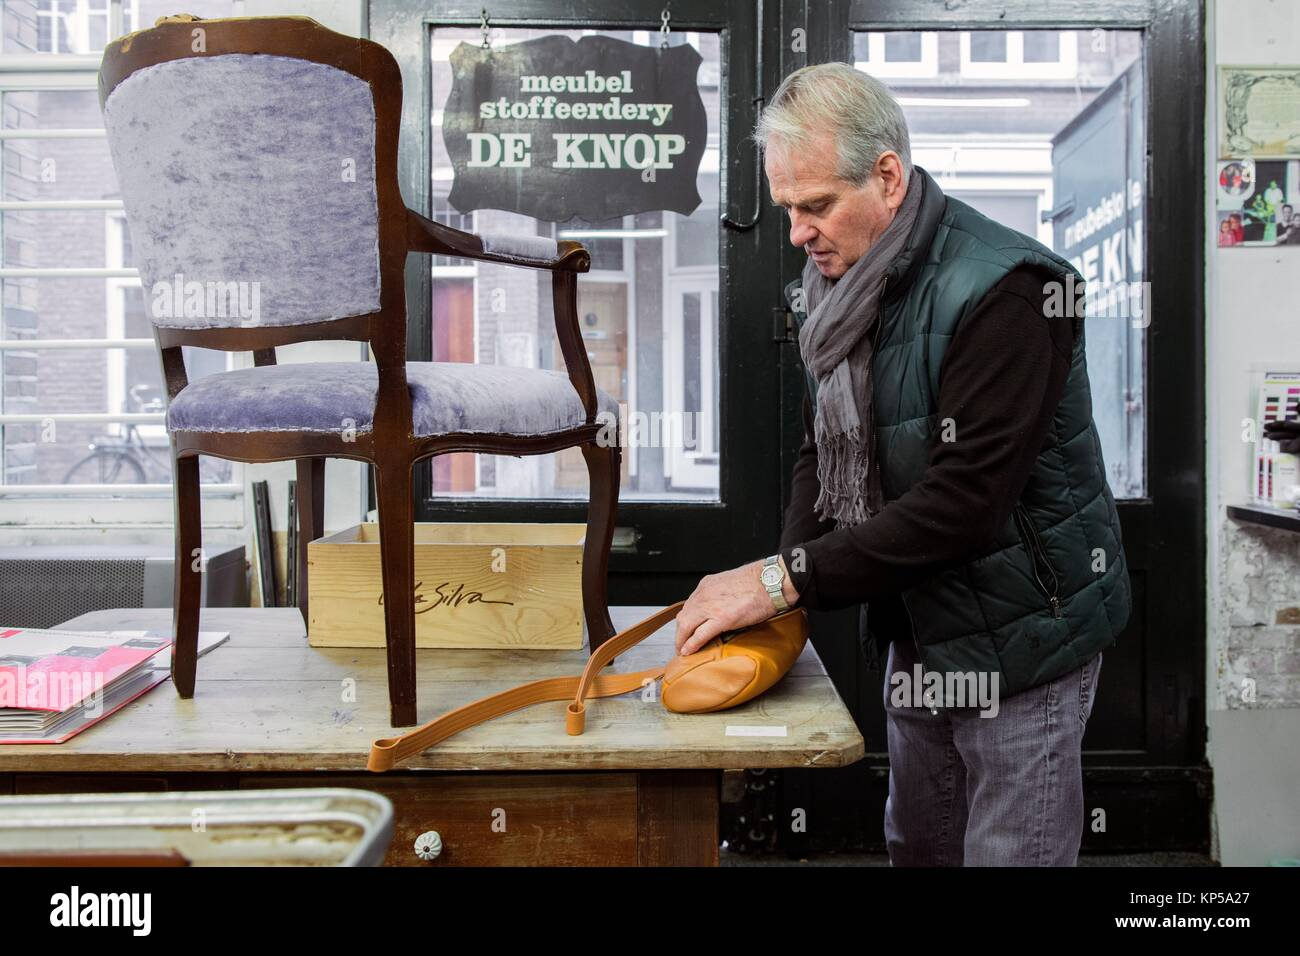 Tilburg, Netherlands. The 75 year old upholsterer Boy packing his latest things before partially retiring and moving - Stock Image